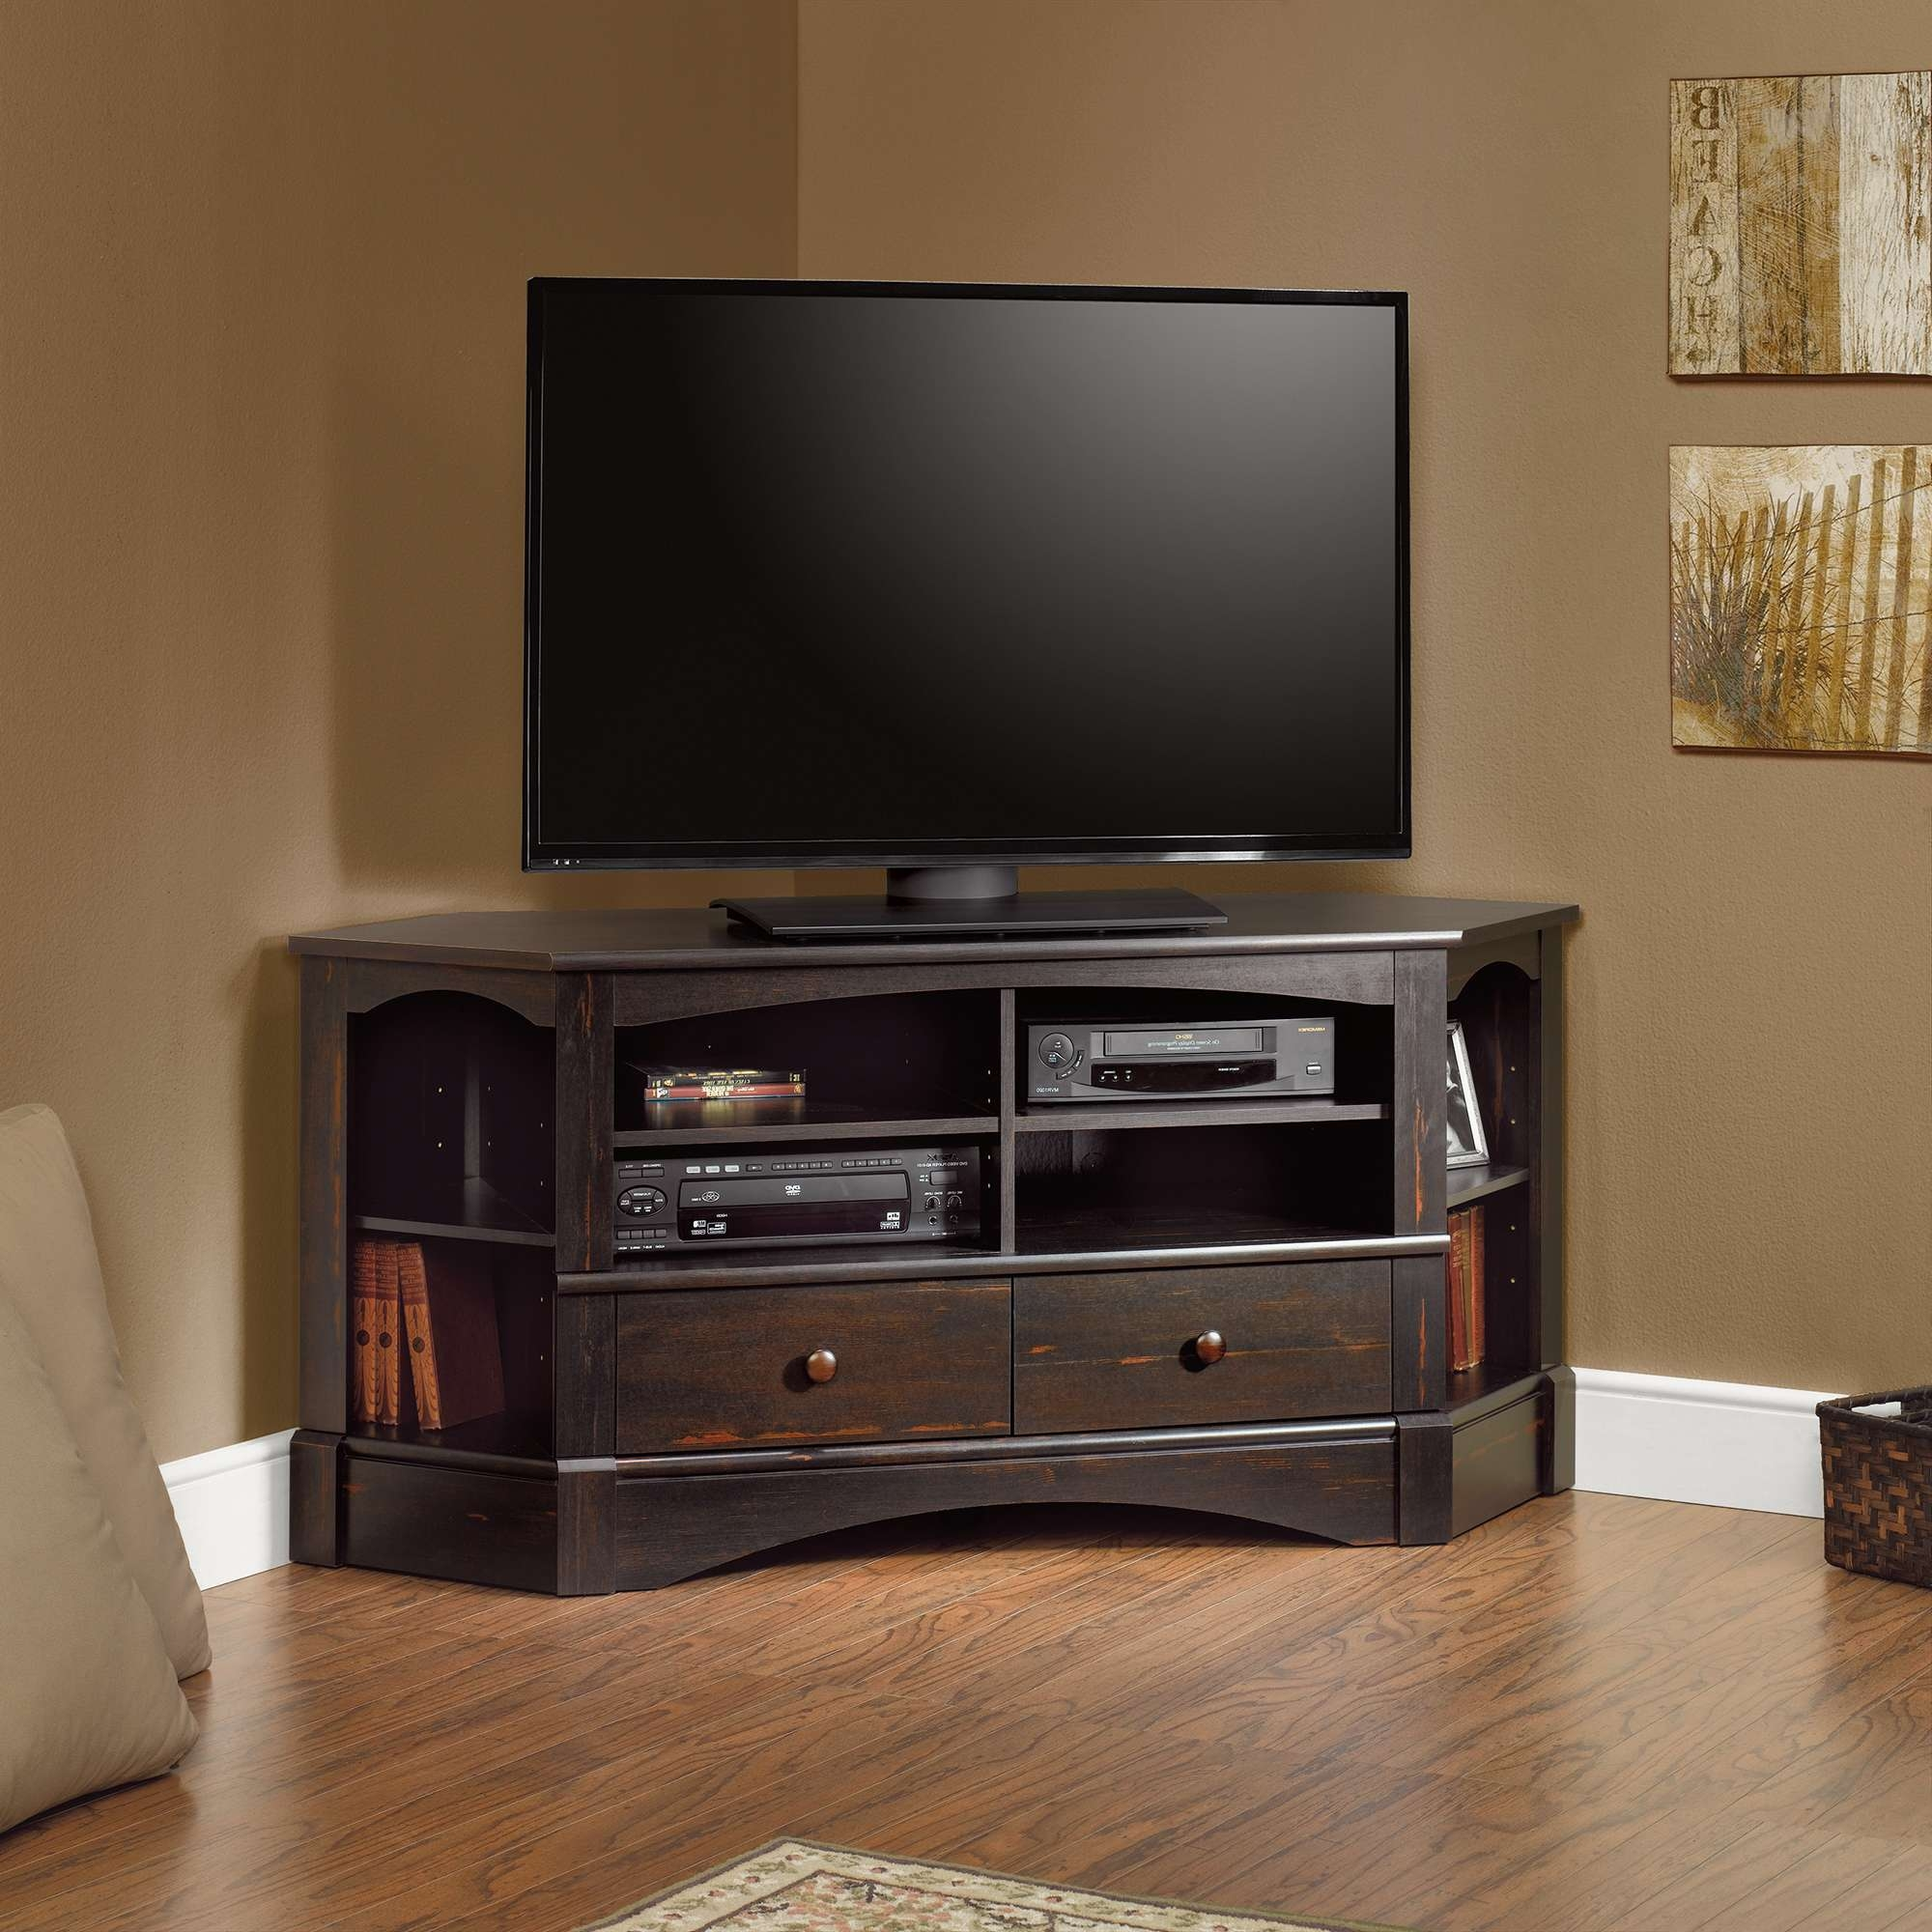 Tv : 41 Stunning 40 Inch Tv Stand Wood Photos Concept Stunning For Corner Wooden Tv Stands (View 13 of 15)